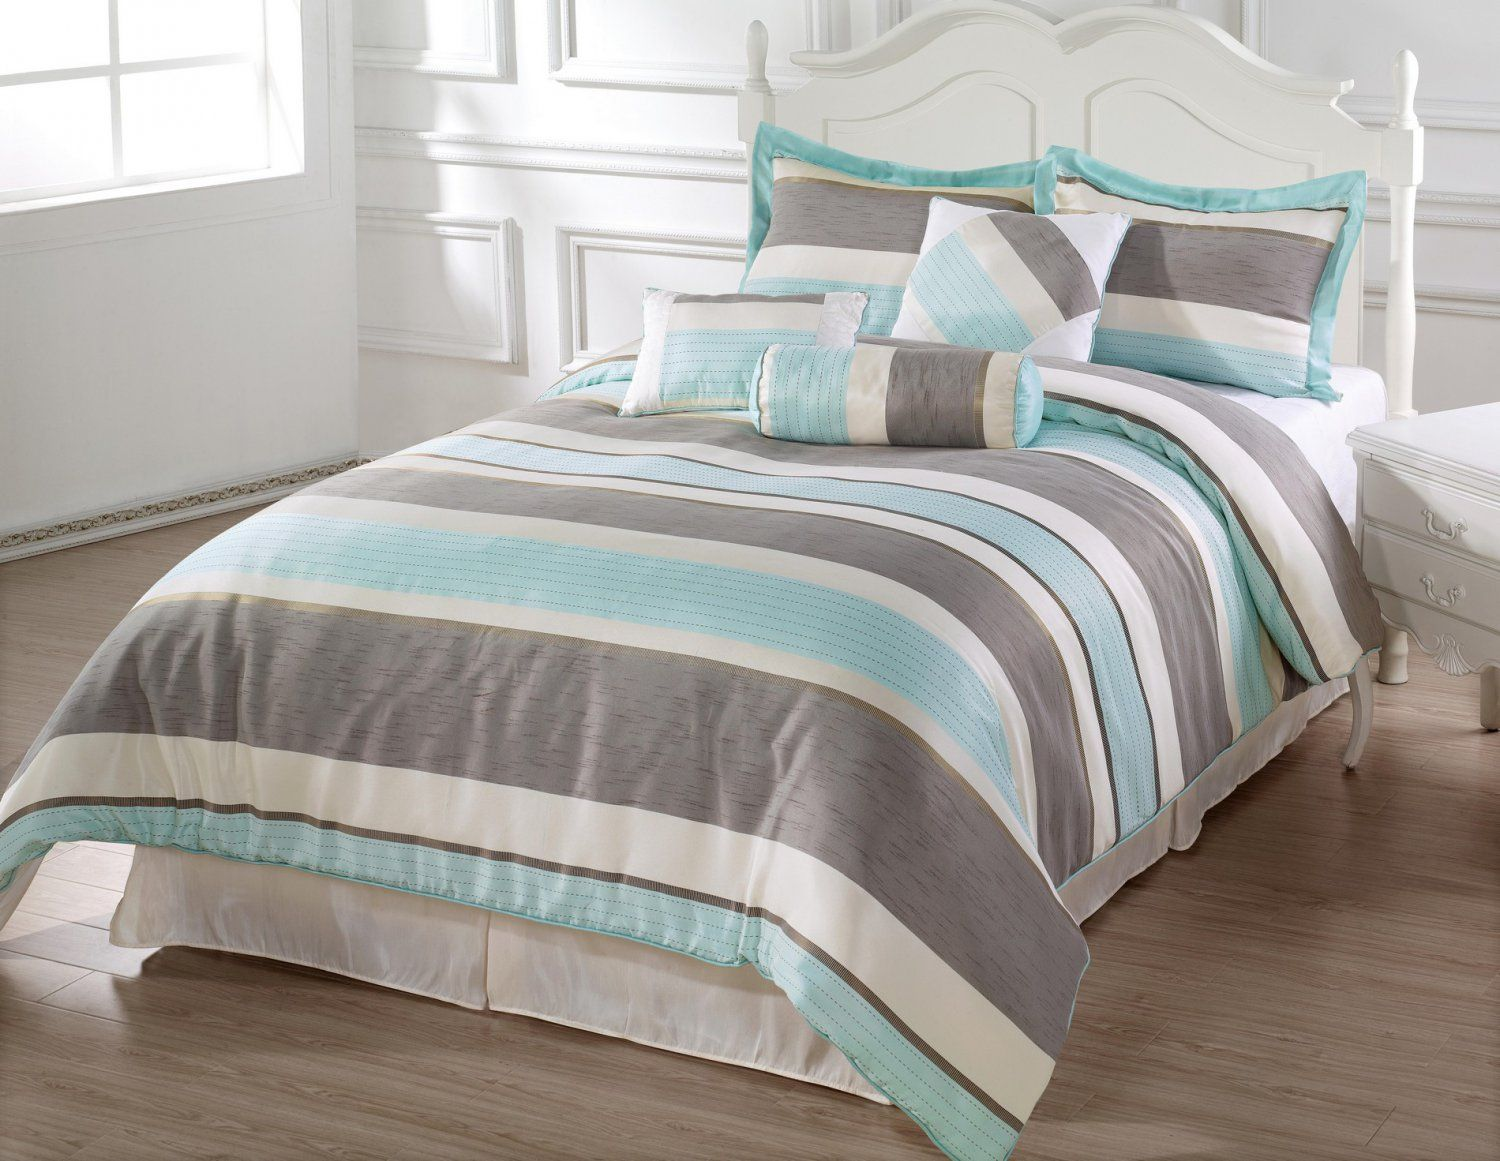 Bachelor 7pc Comforter Set Aqua Blue Beige Grey Stripes King Bed In A Bag Home Decor